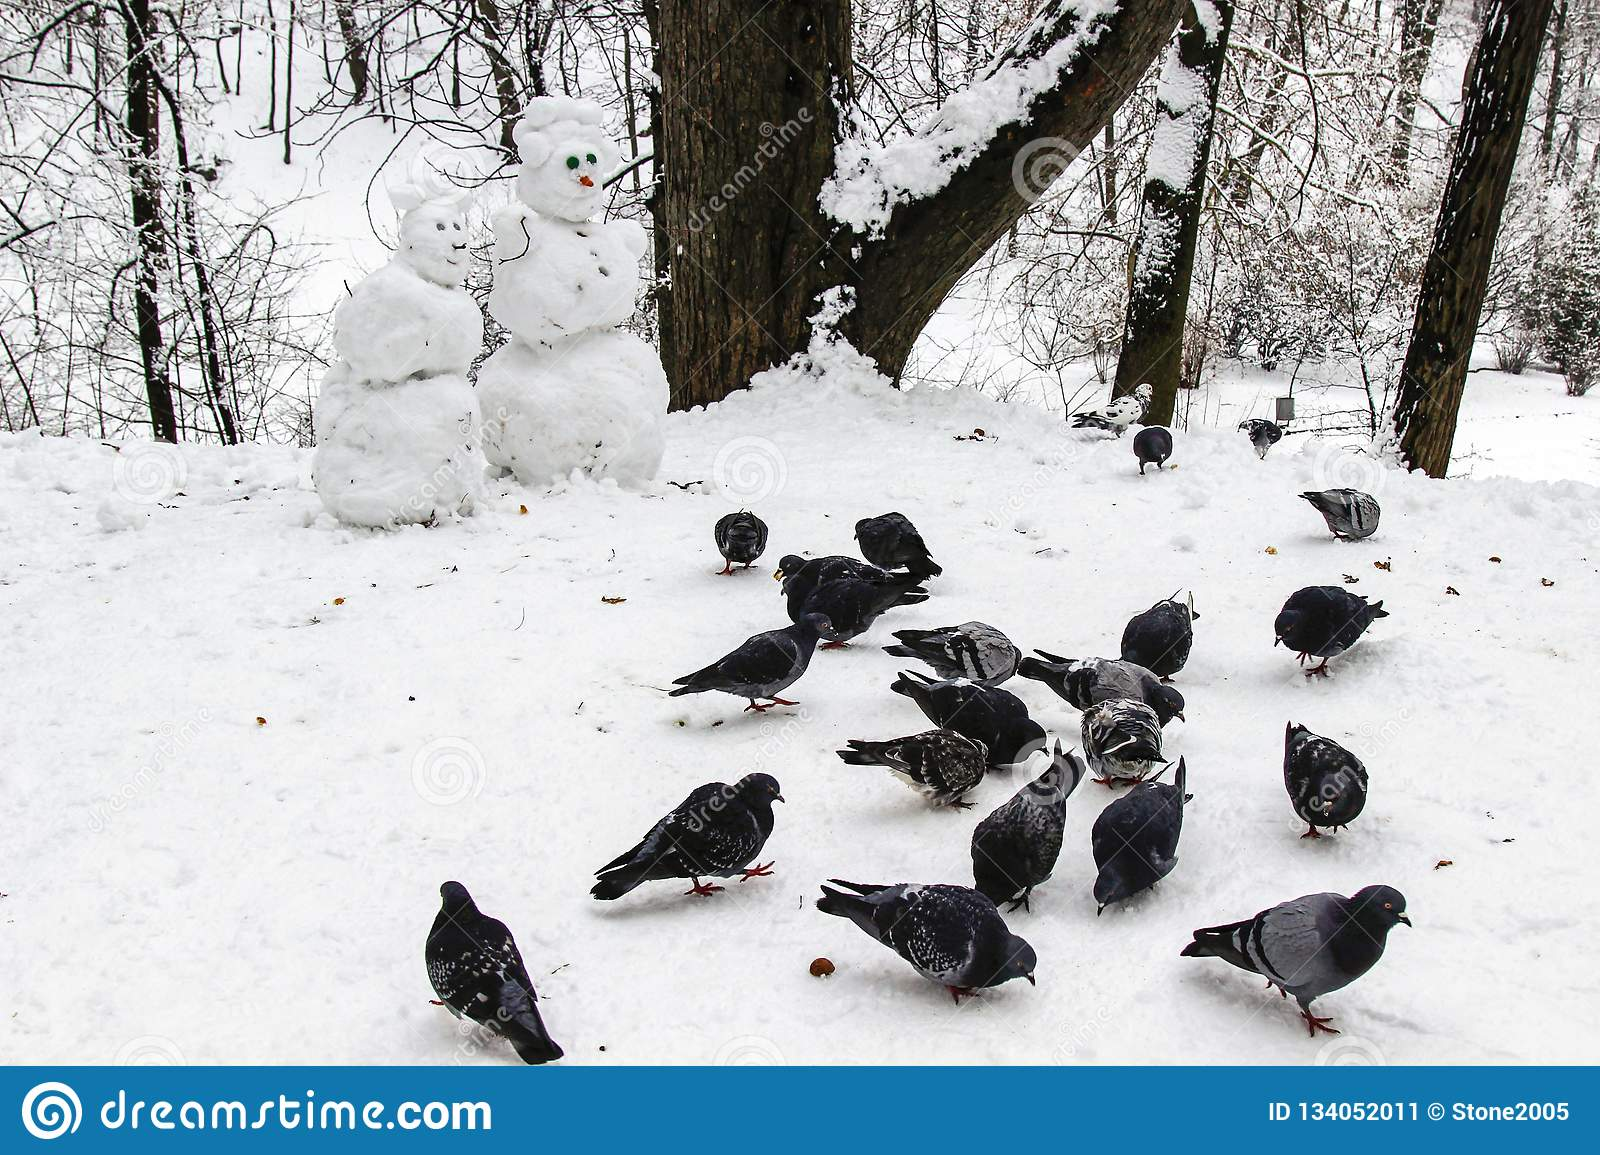 Snowmen couple in the winter forest. Made by hand. A flock of pigeons pecking grain in the snow